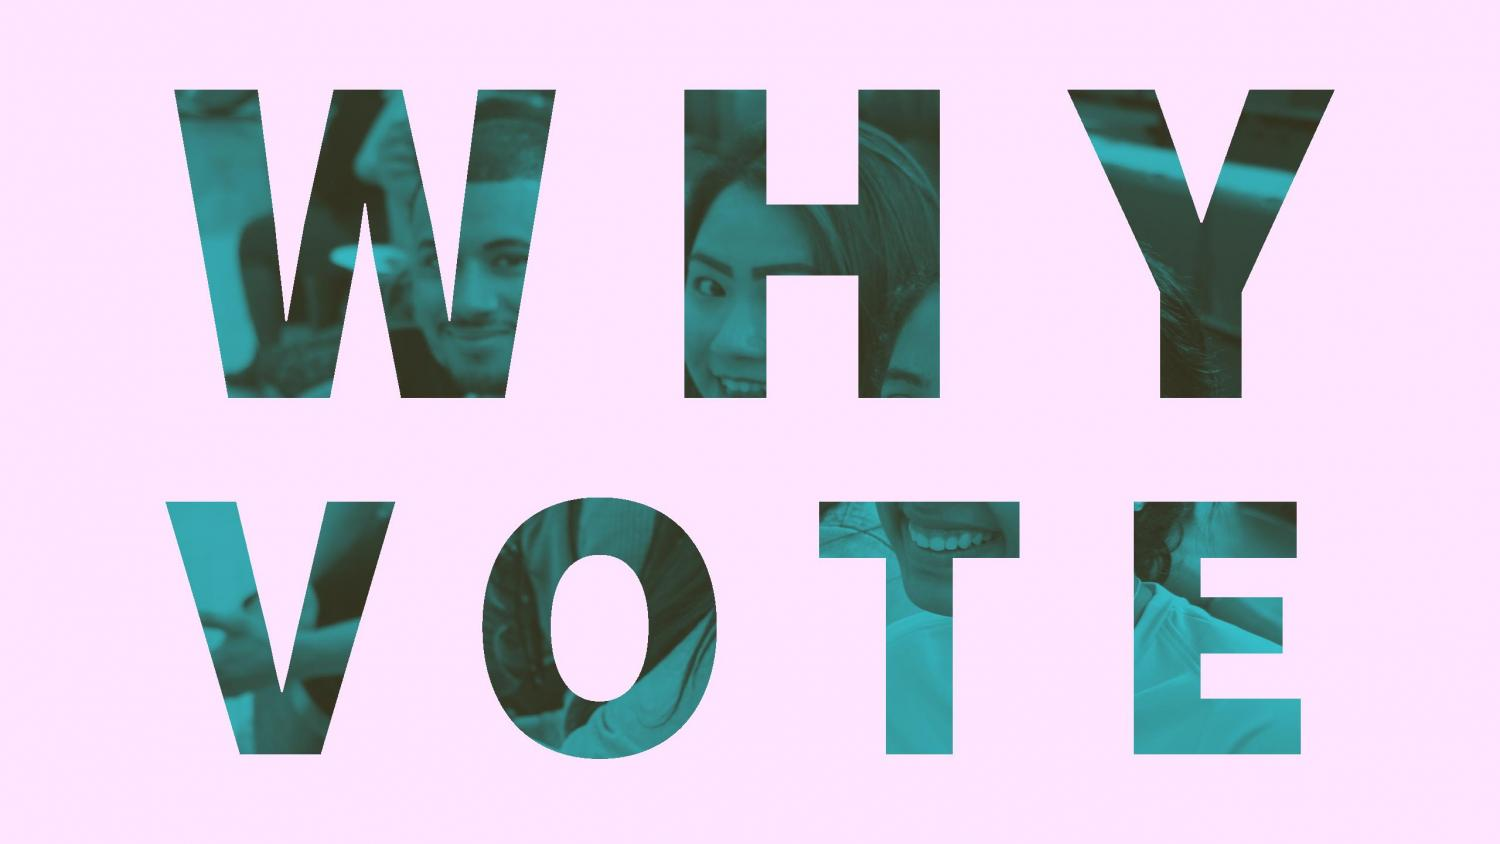 Why should you vote?